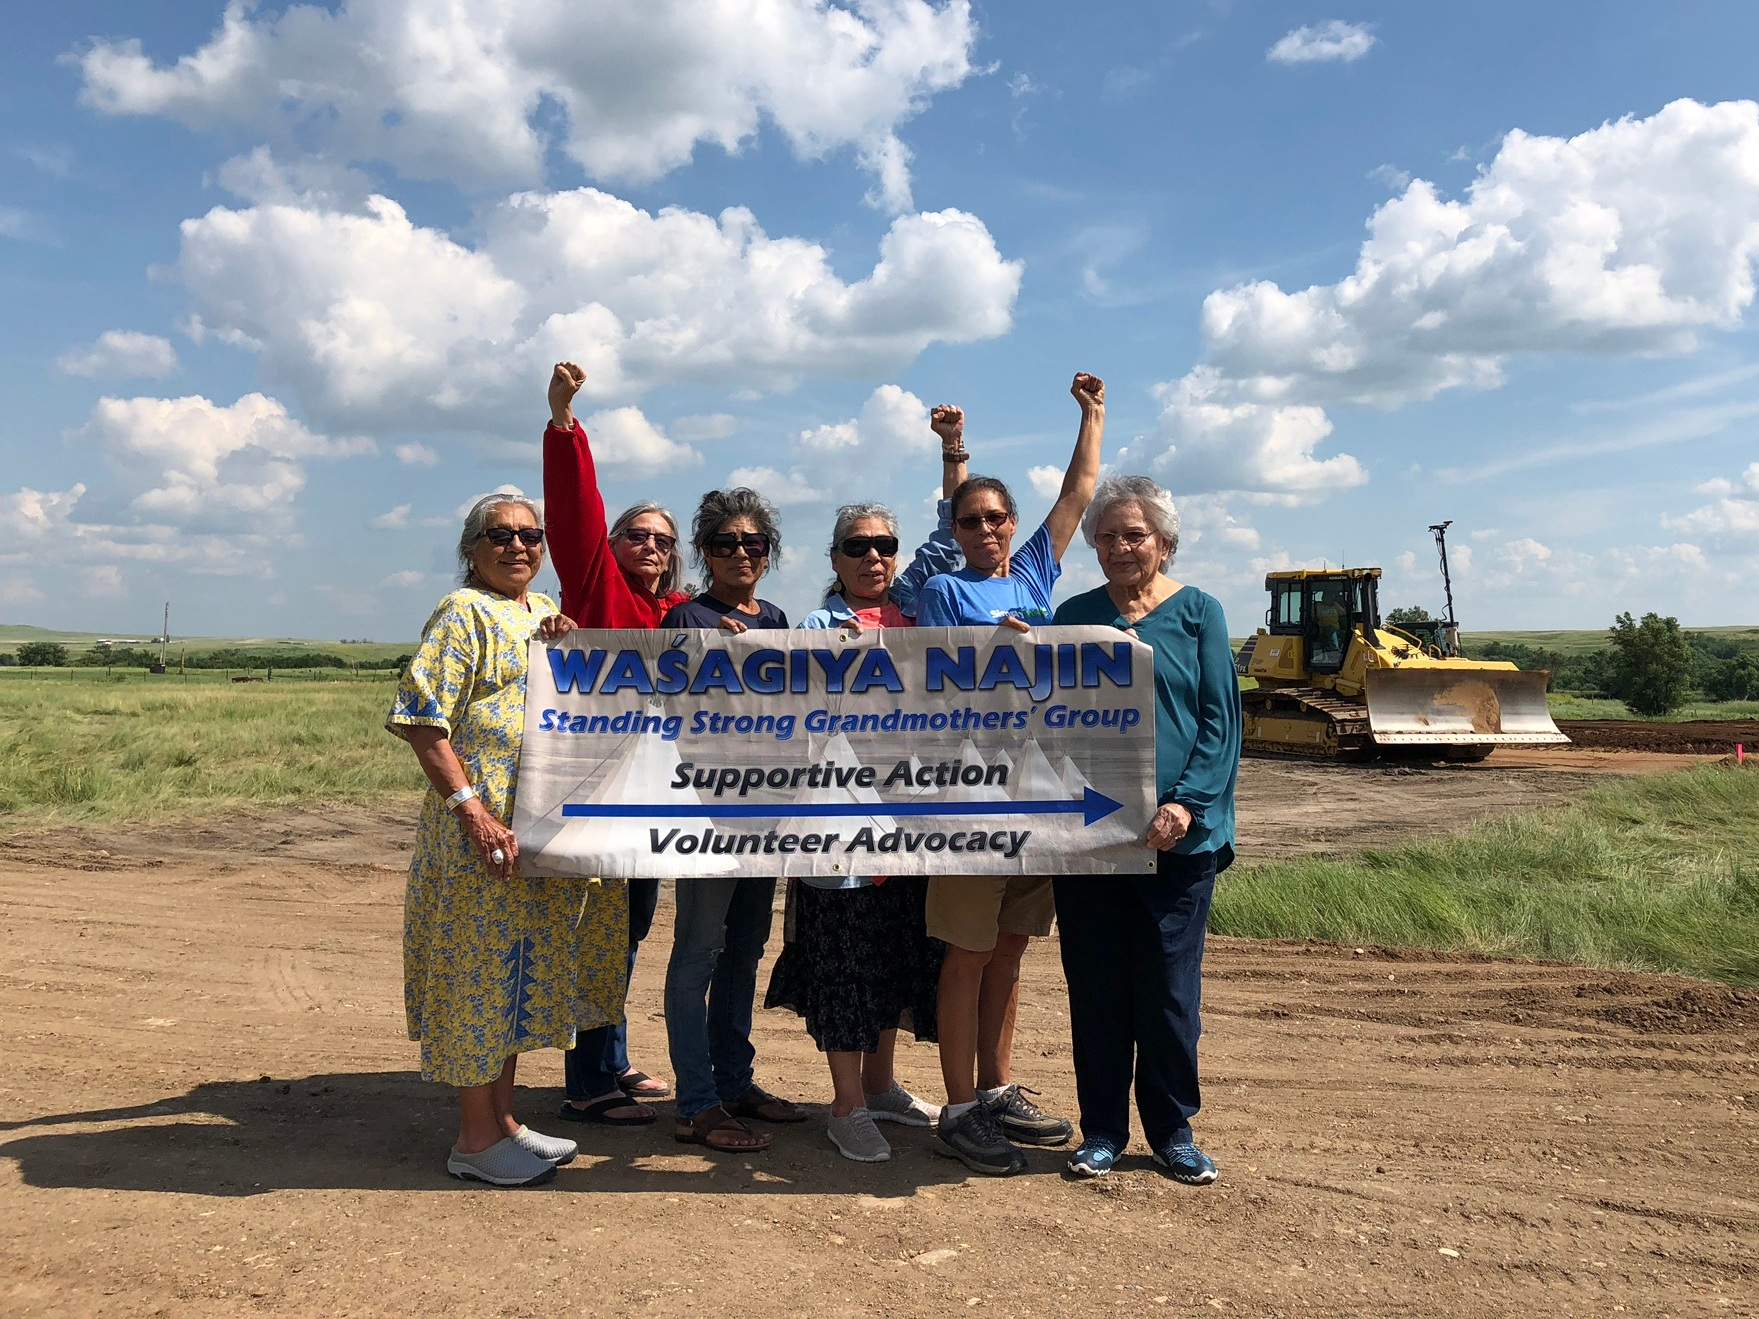 The Wasagiya Najin, or Standing Strong Grandmother's Group, which includes Lakota activists and Children's Village advisors Madonna Thunder Hawk and Marcella Gilbert, strongly endorses and believes in the mission of the Simply Smiles Children's Village!